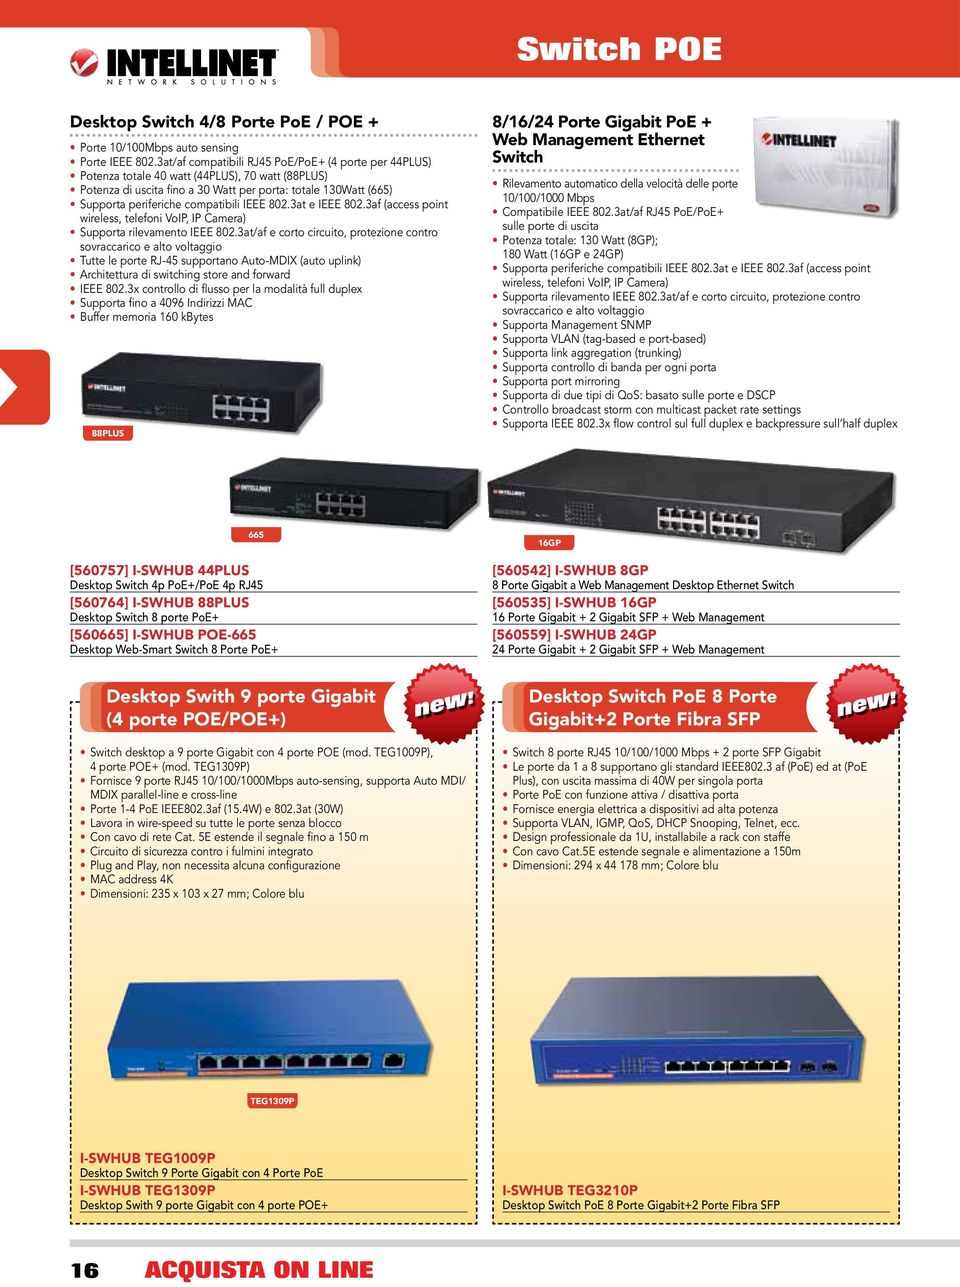 compatibili IEEE 802.3at e IEEE 802.3af (access point wireless, telefoni VoIP, IP Camera) Supporta rilevamento IEEE 802.